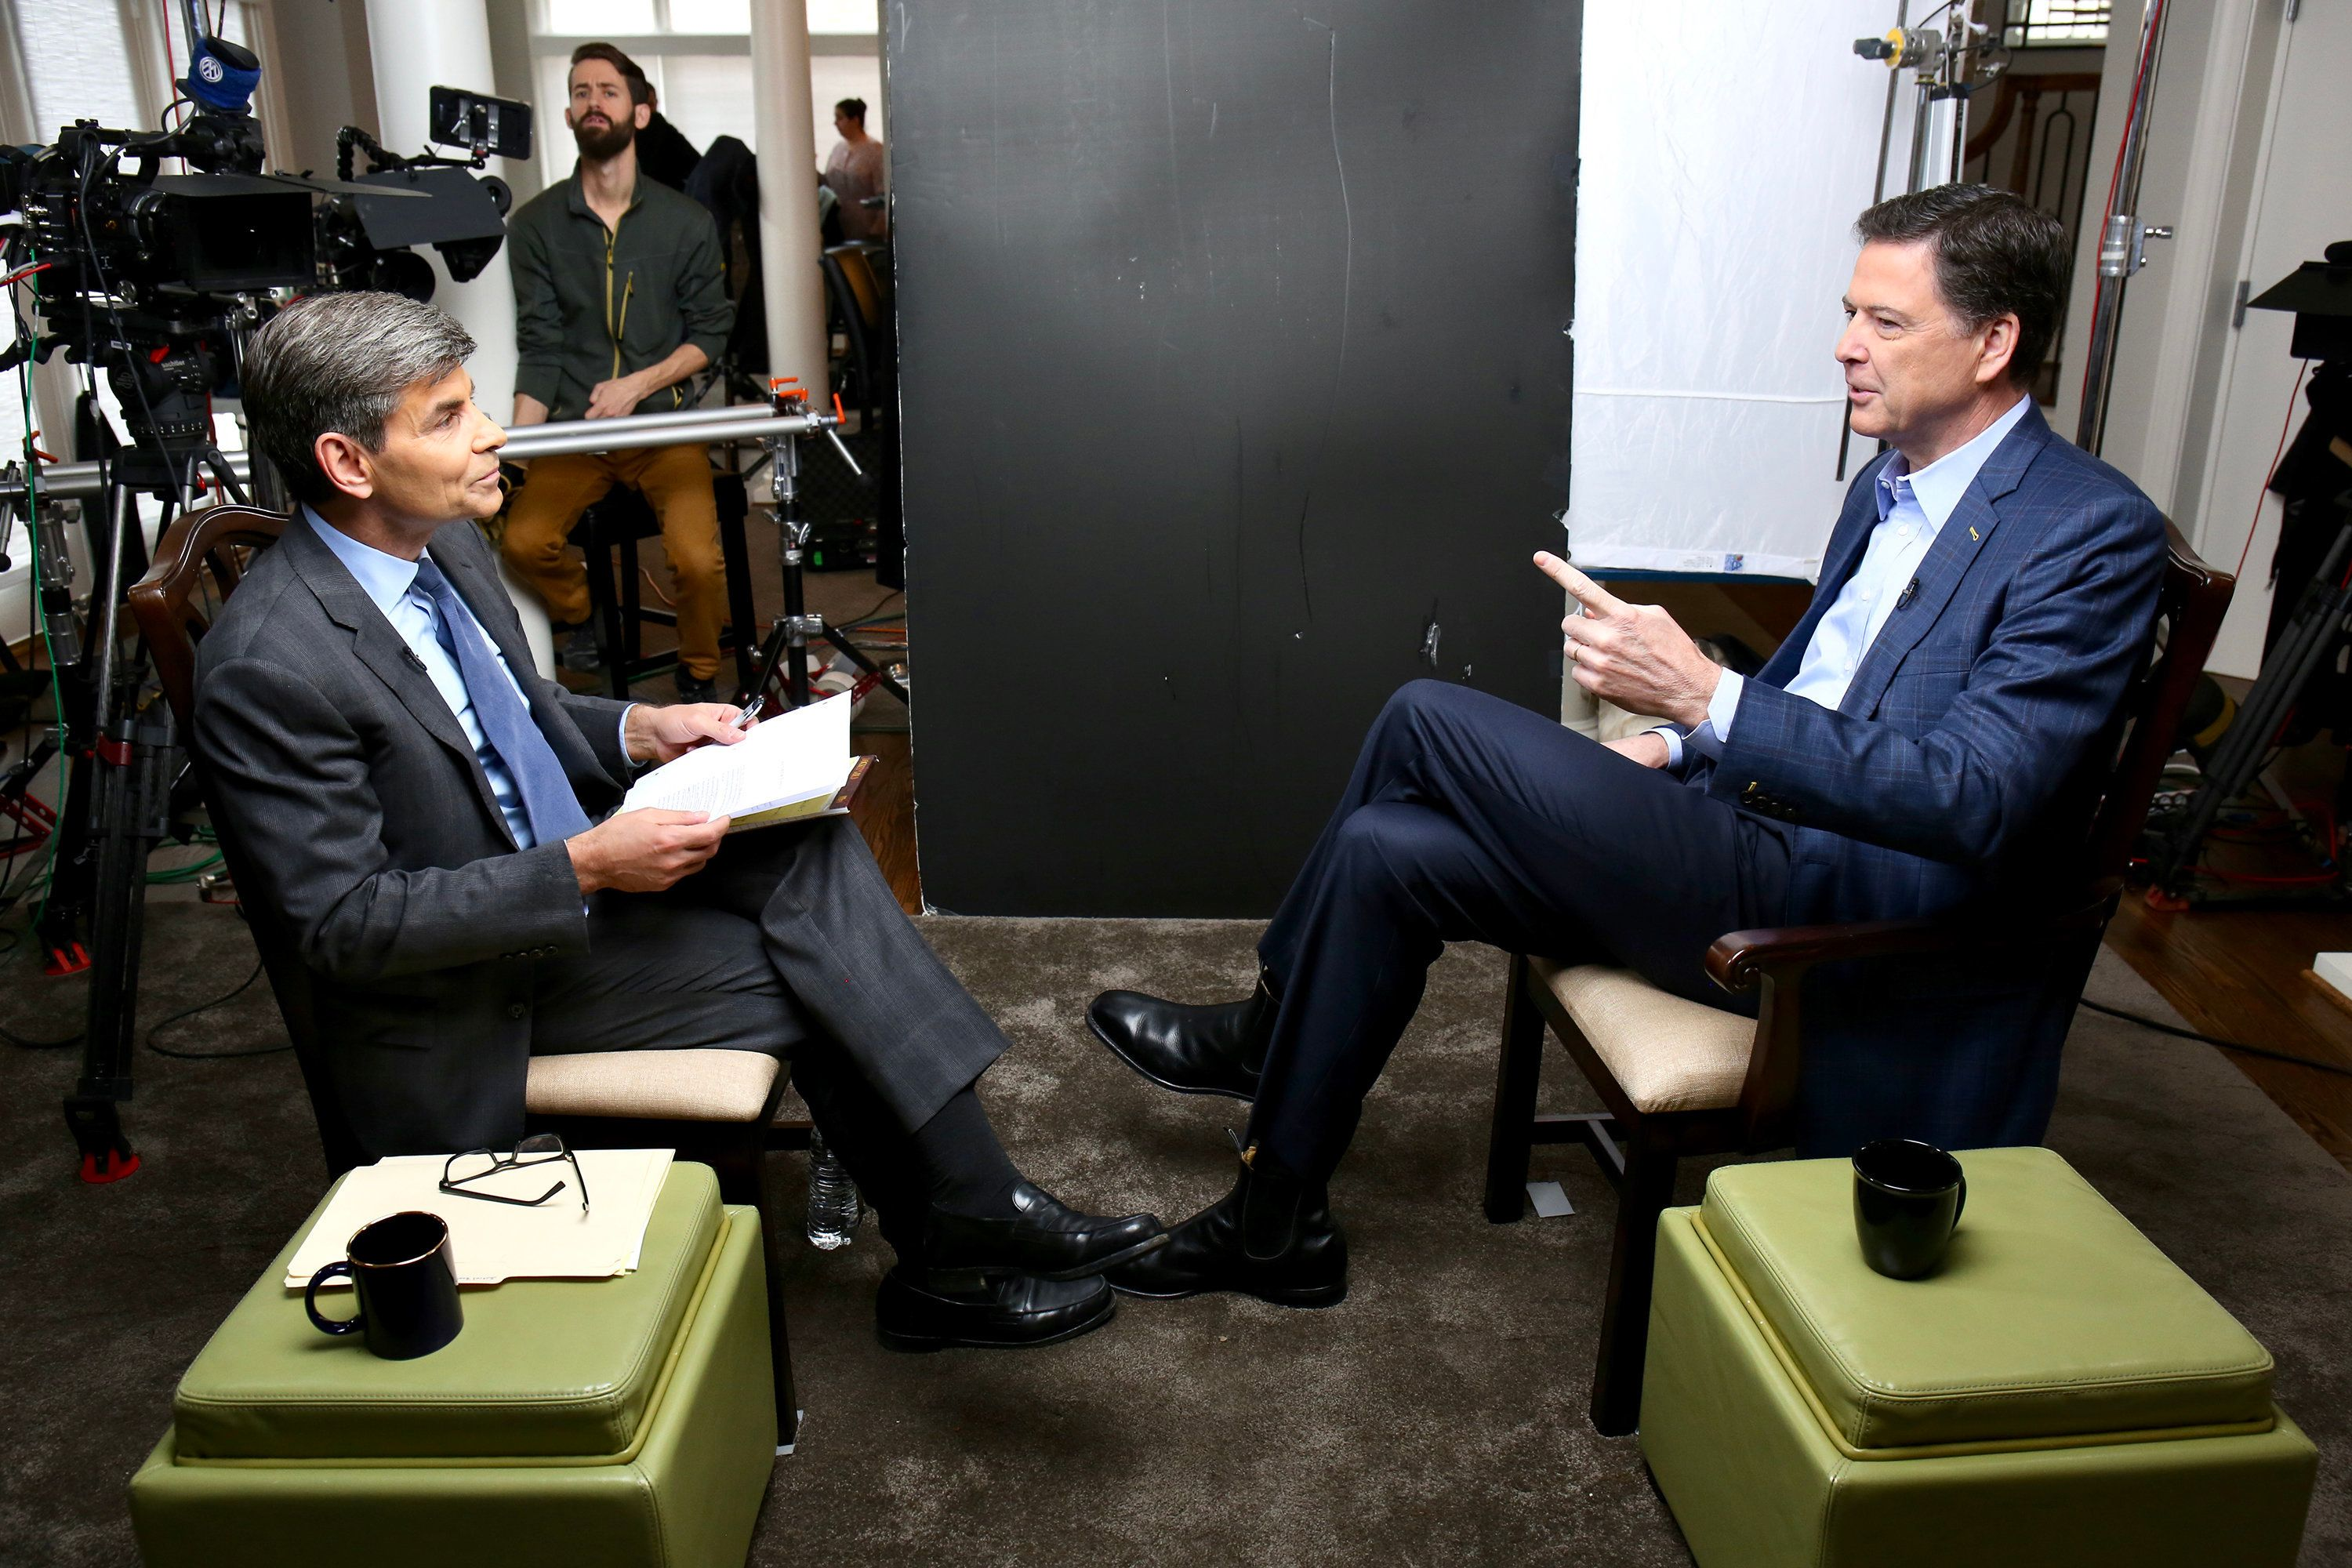 ABC NEWS - George Stephanopoulos sits down with former FBI director James Comey for an exclusive interview that will air during a primetime '20/20' special on Sunday, April 15, 2018 on the ABC Television Network.   (Photo by Ralph Alswang/ABC via Getty Images) GEORGE STEPHANOPOULOS, JAMES COMEY